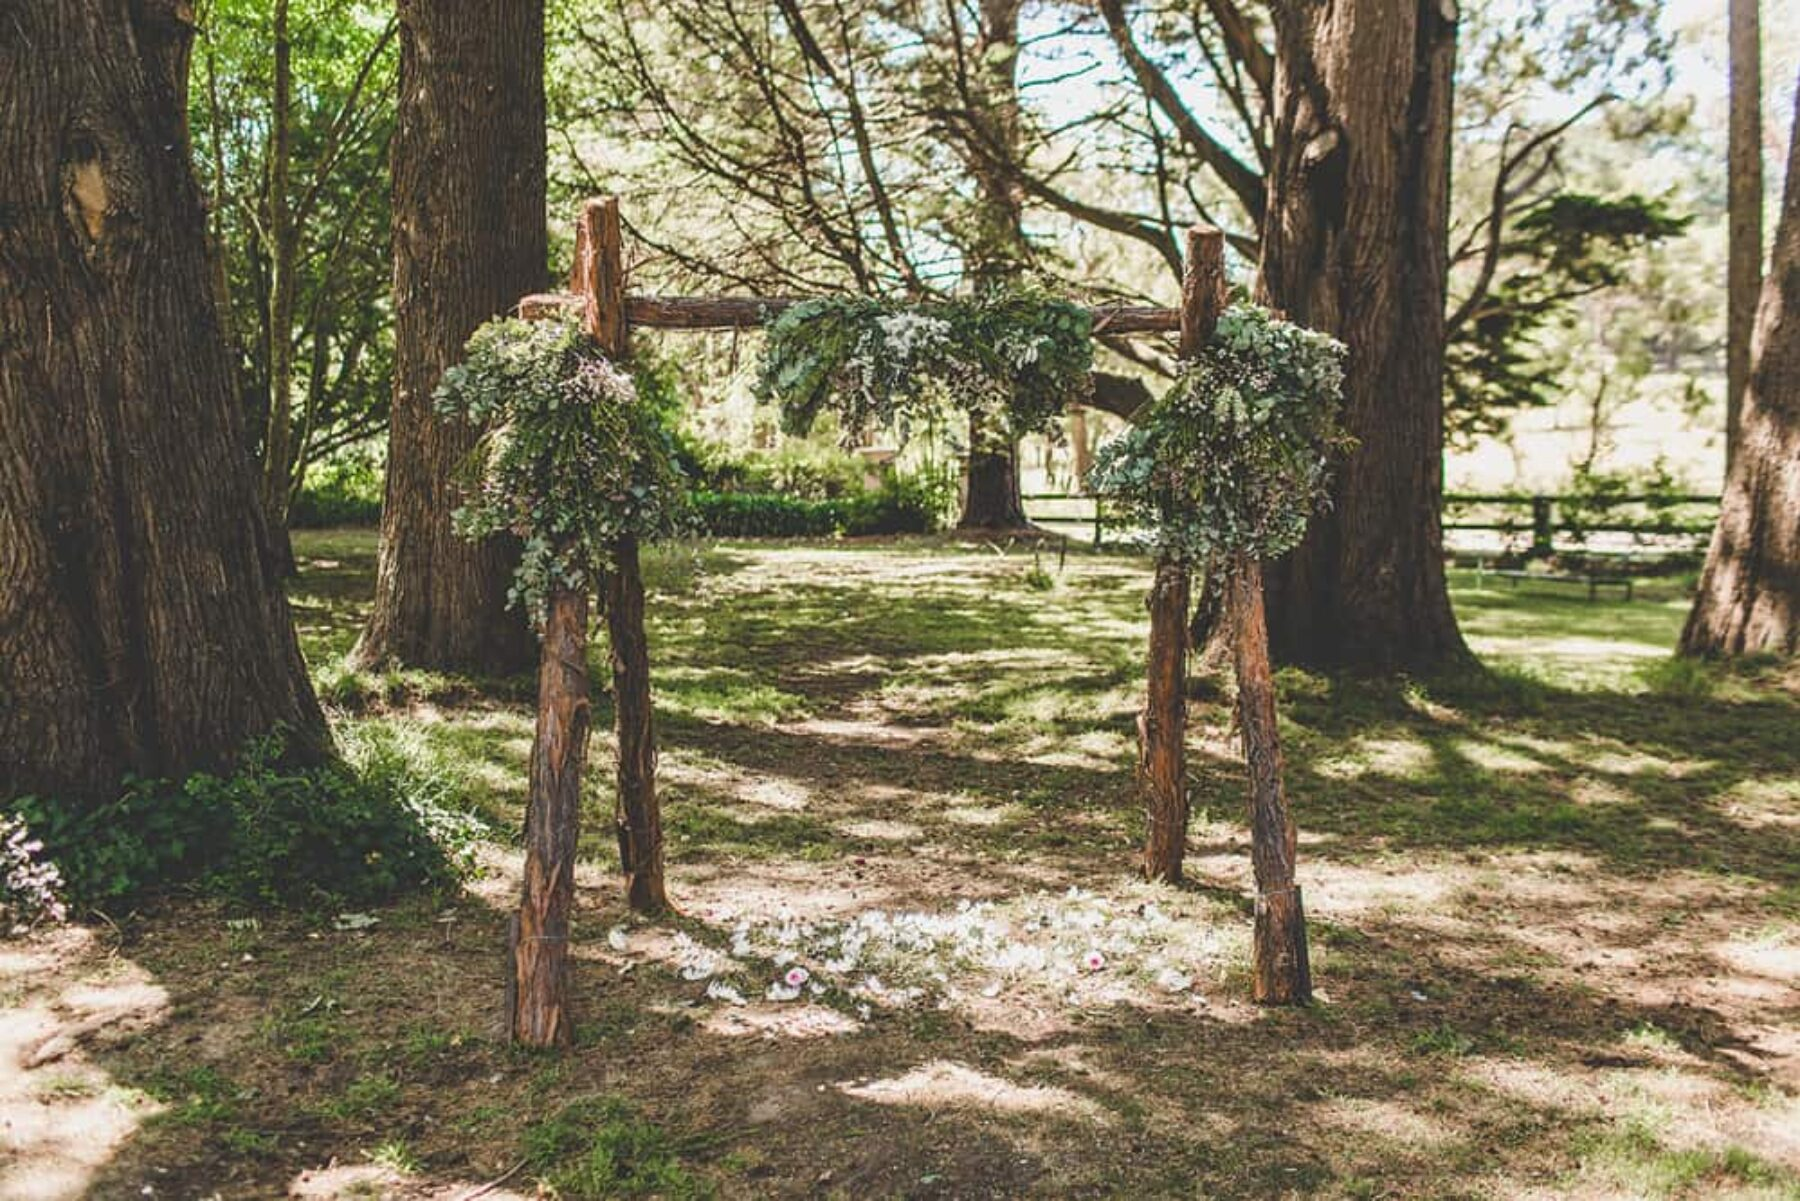 timber arbour with foliage